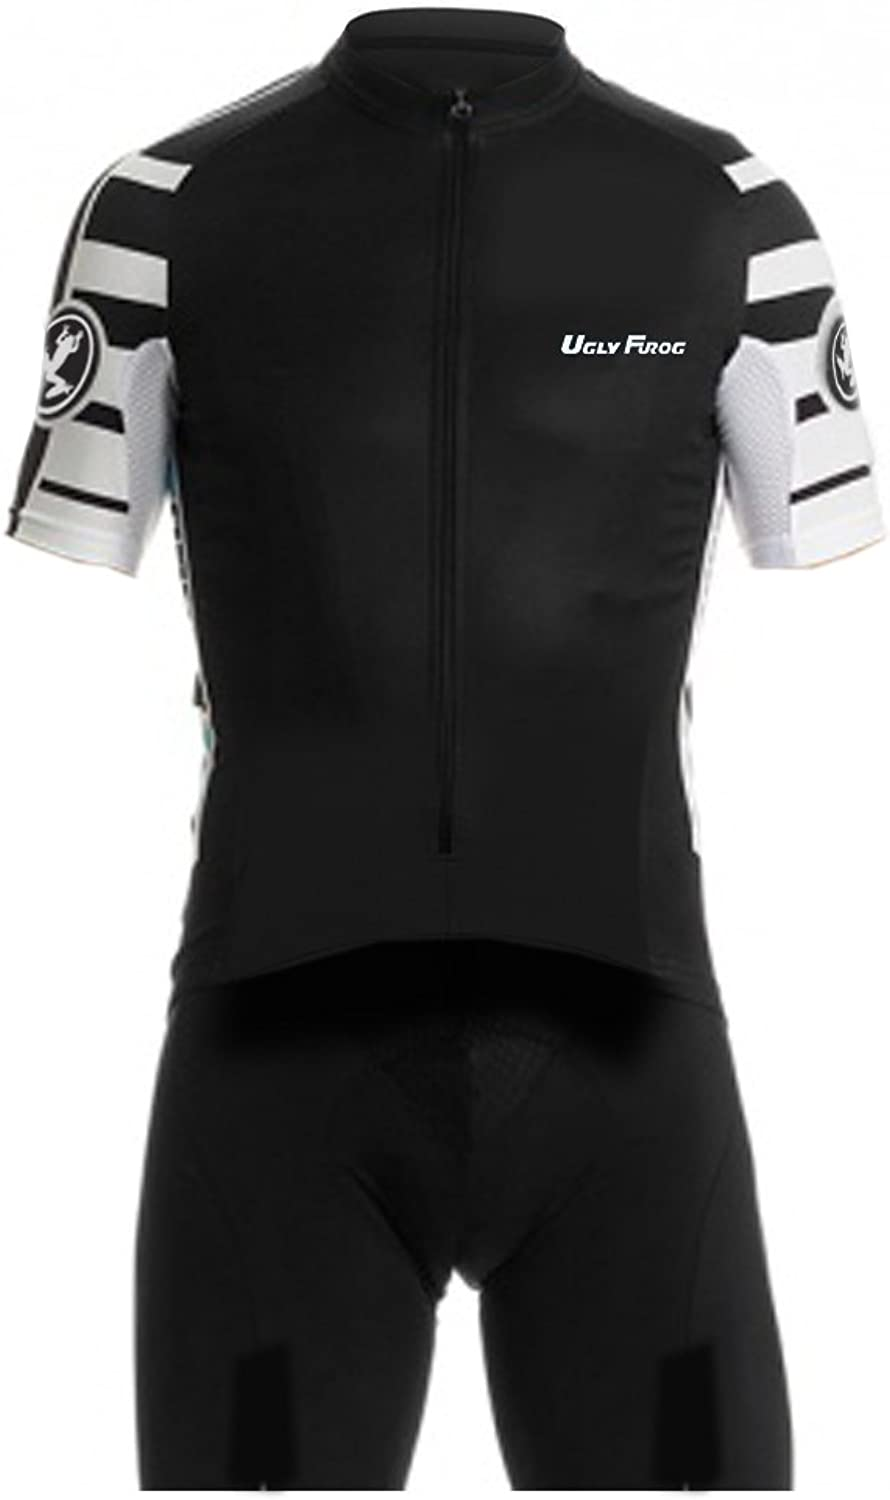 Uglyfrog Men's Cycling Skinsuit  Short Sleeves and Short Legs with Gel Pad